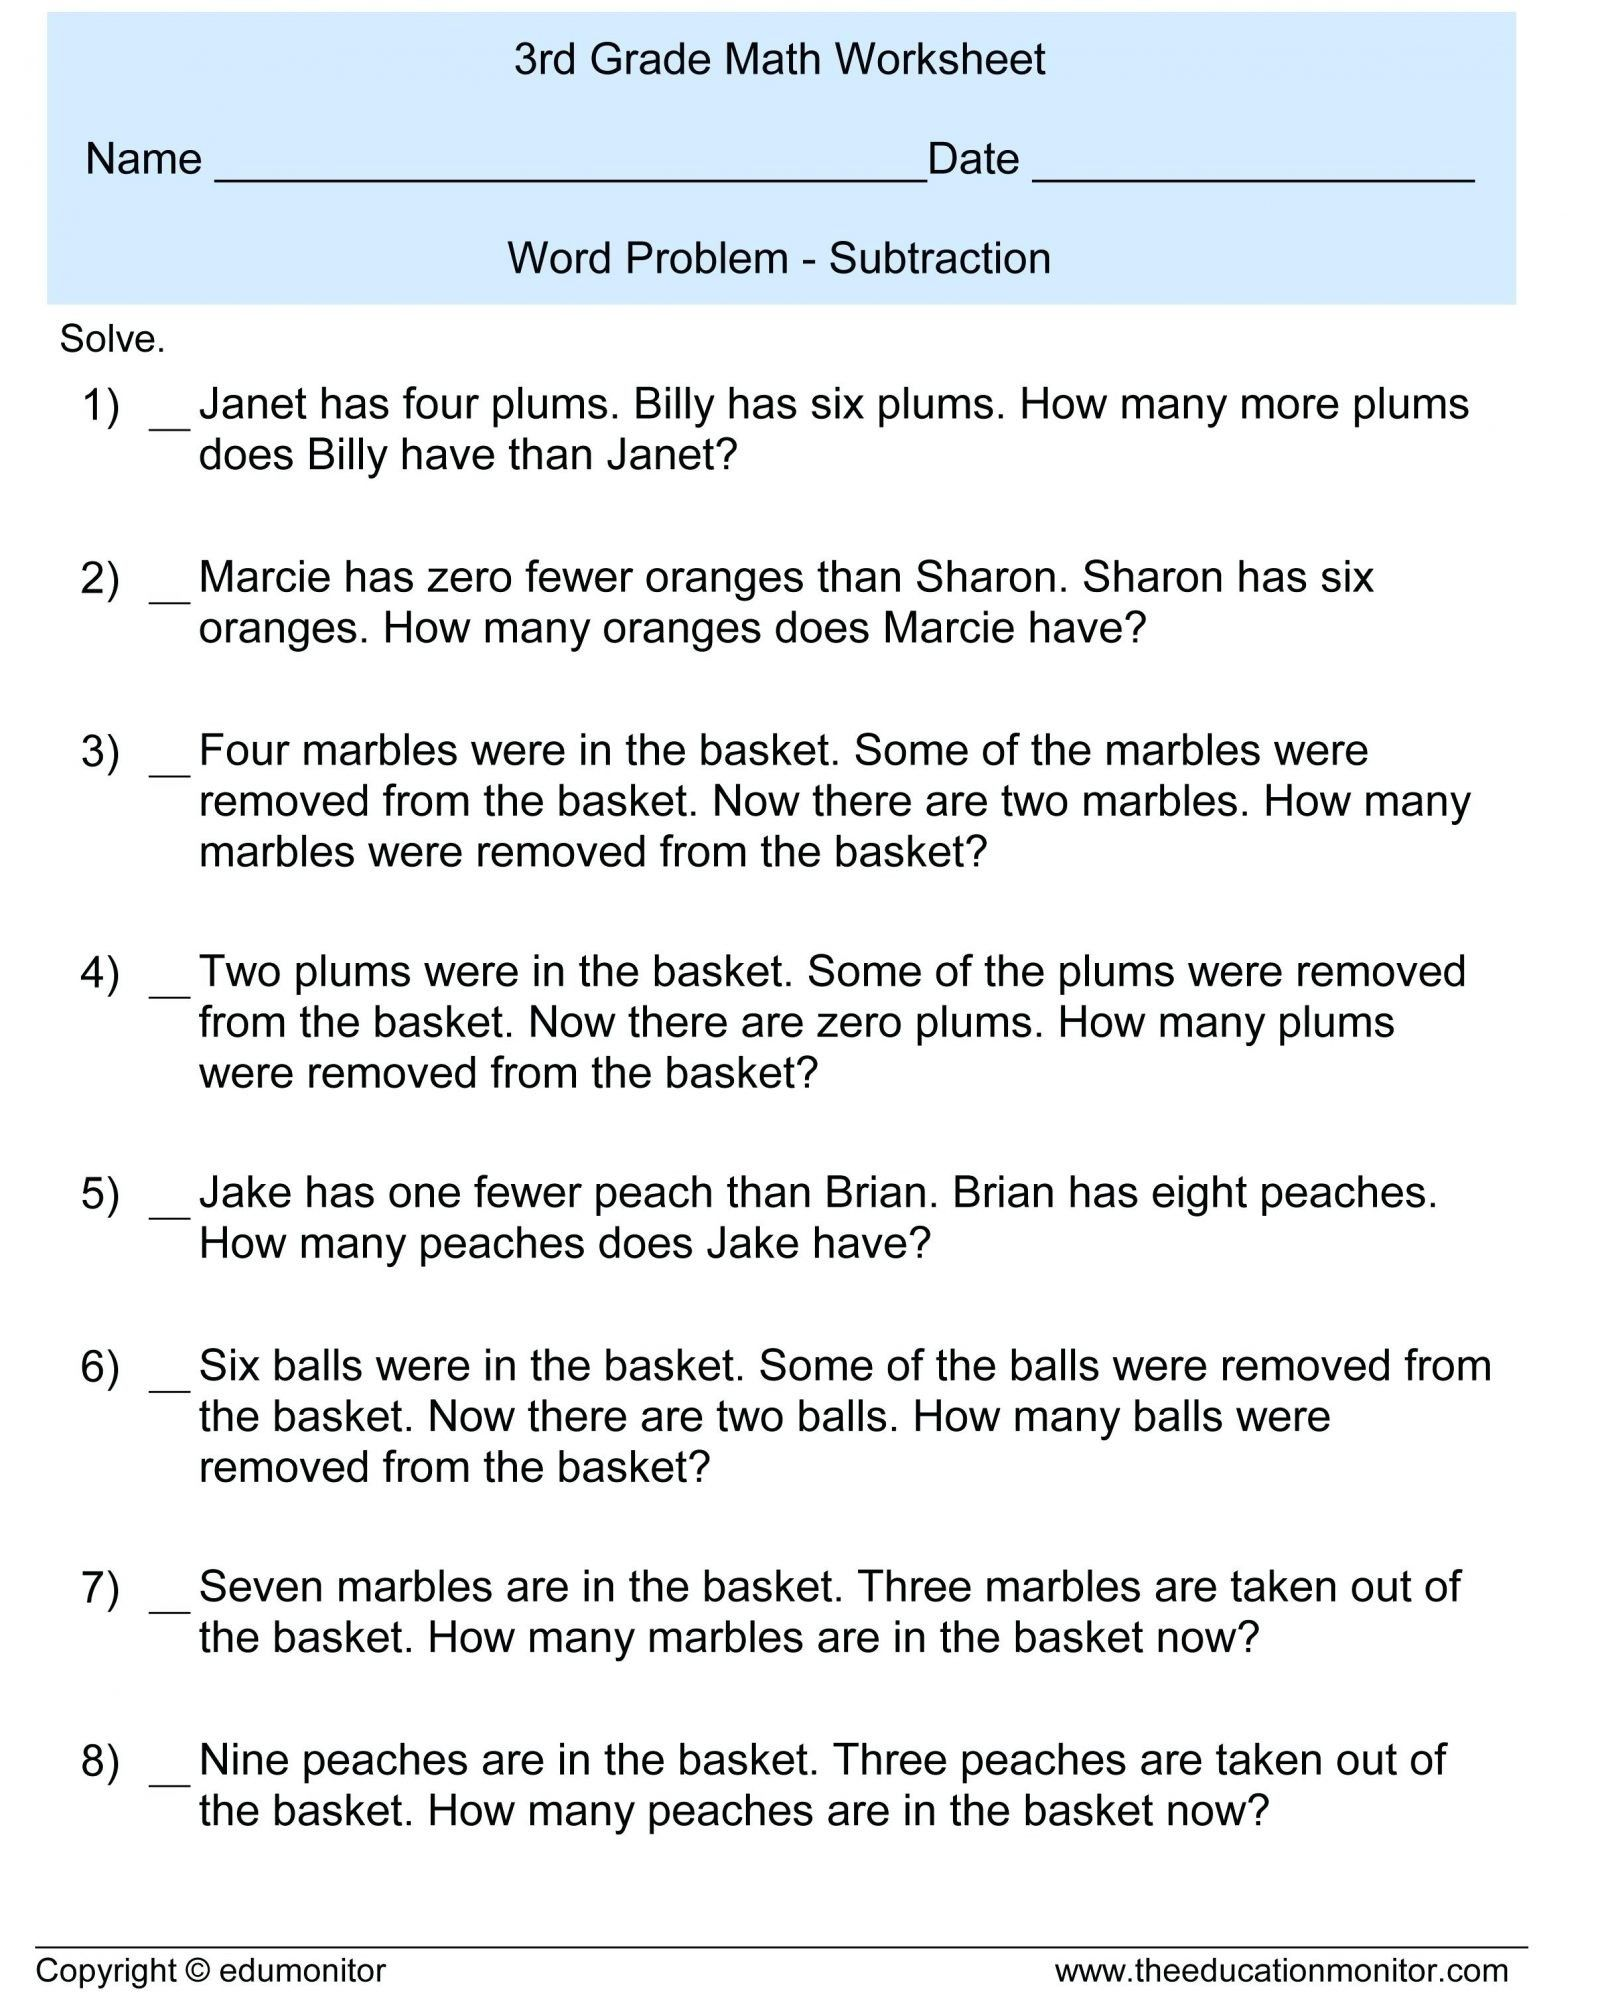 hight resolution of Transition Words Worksheets 6th Grade   Printable Worksheets and Activities  for Teachers